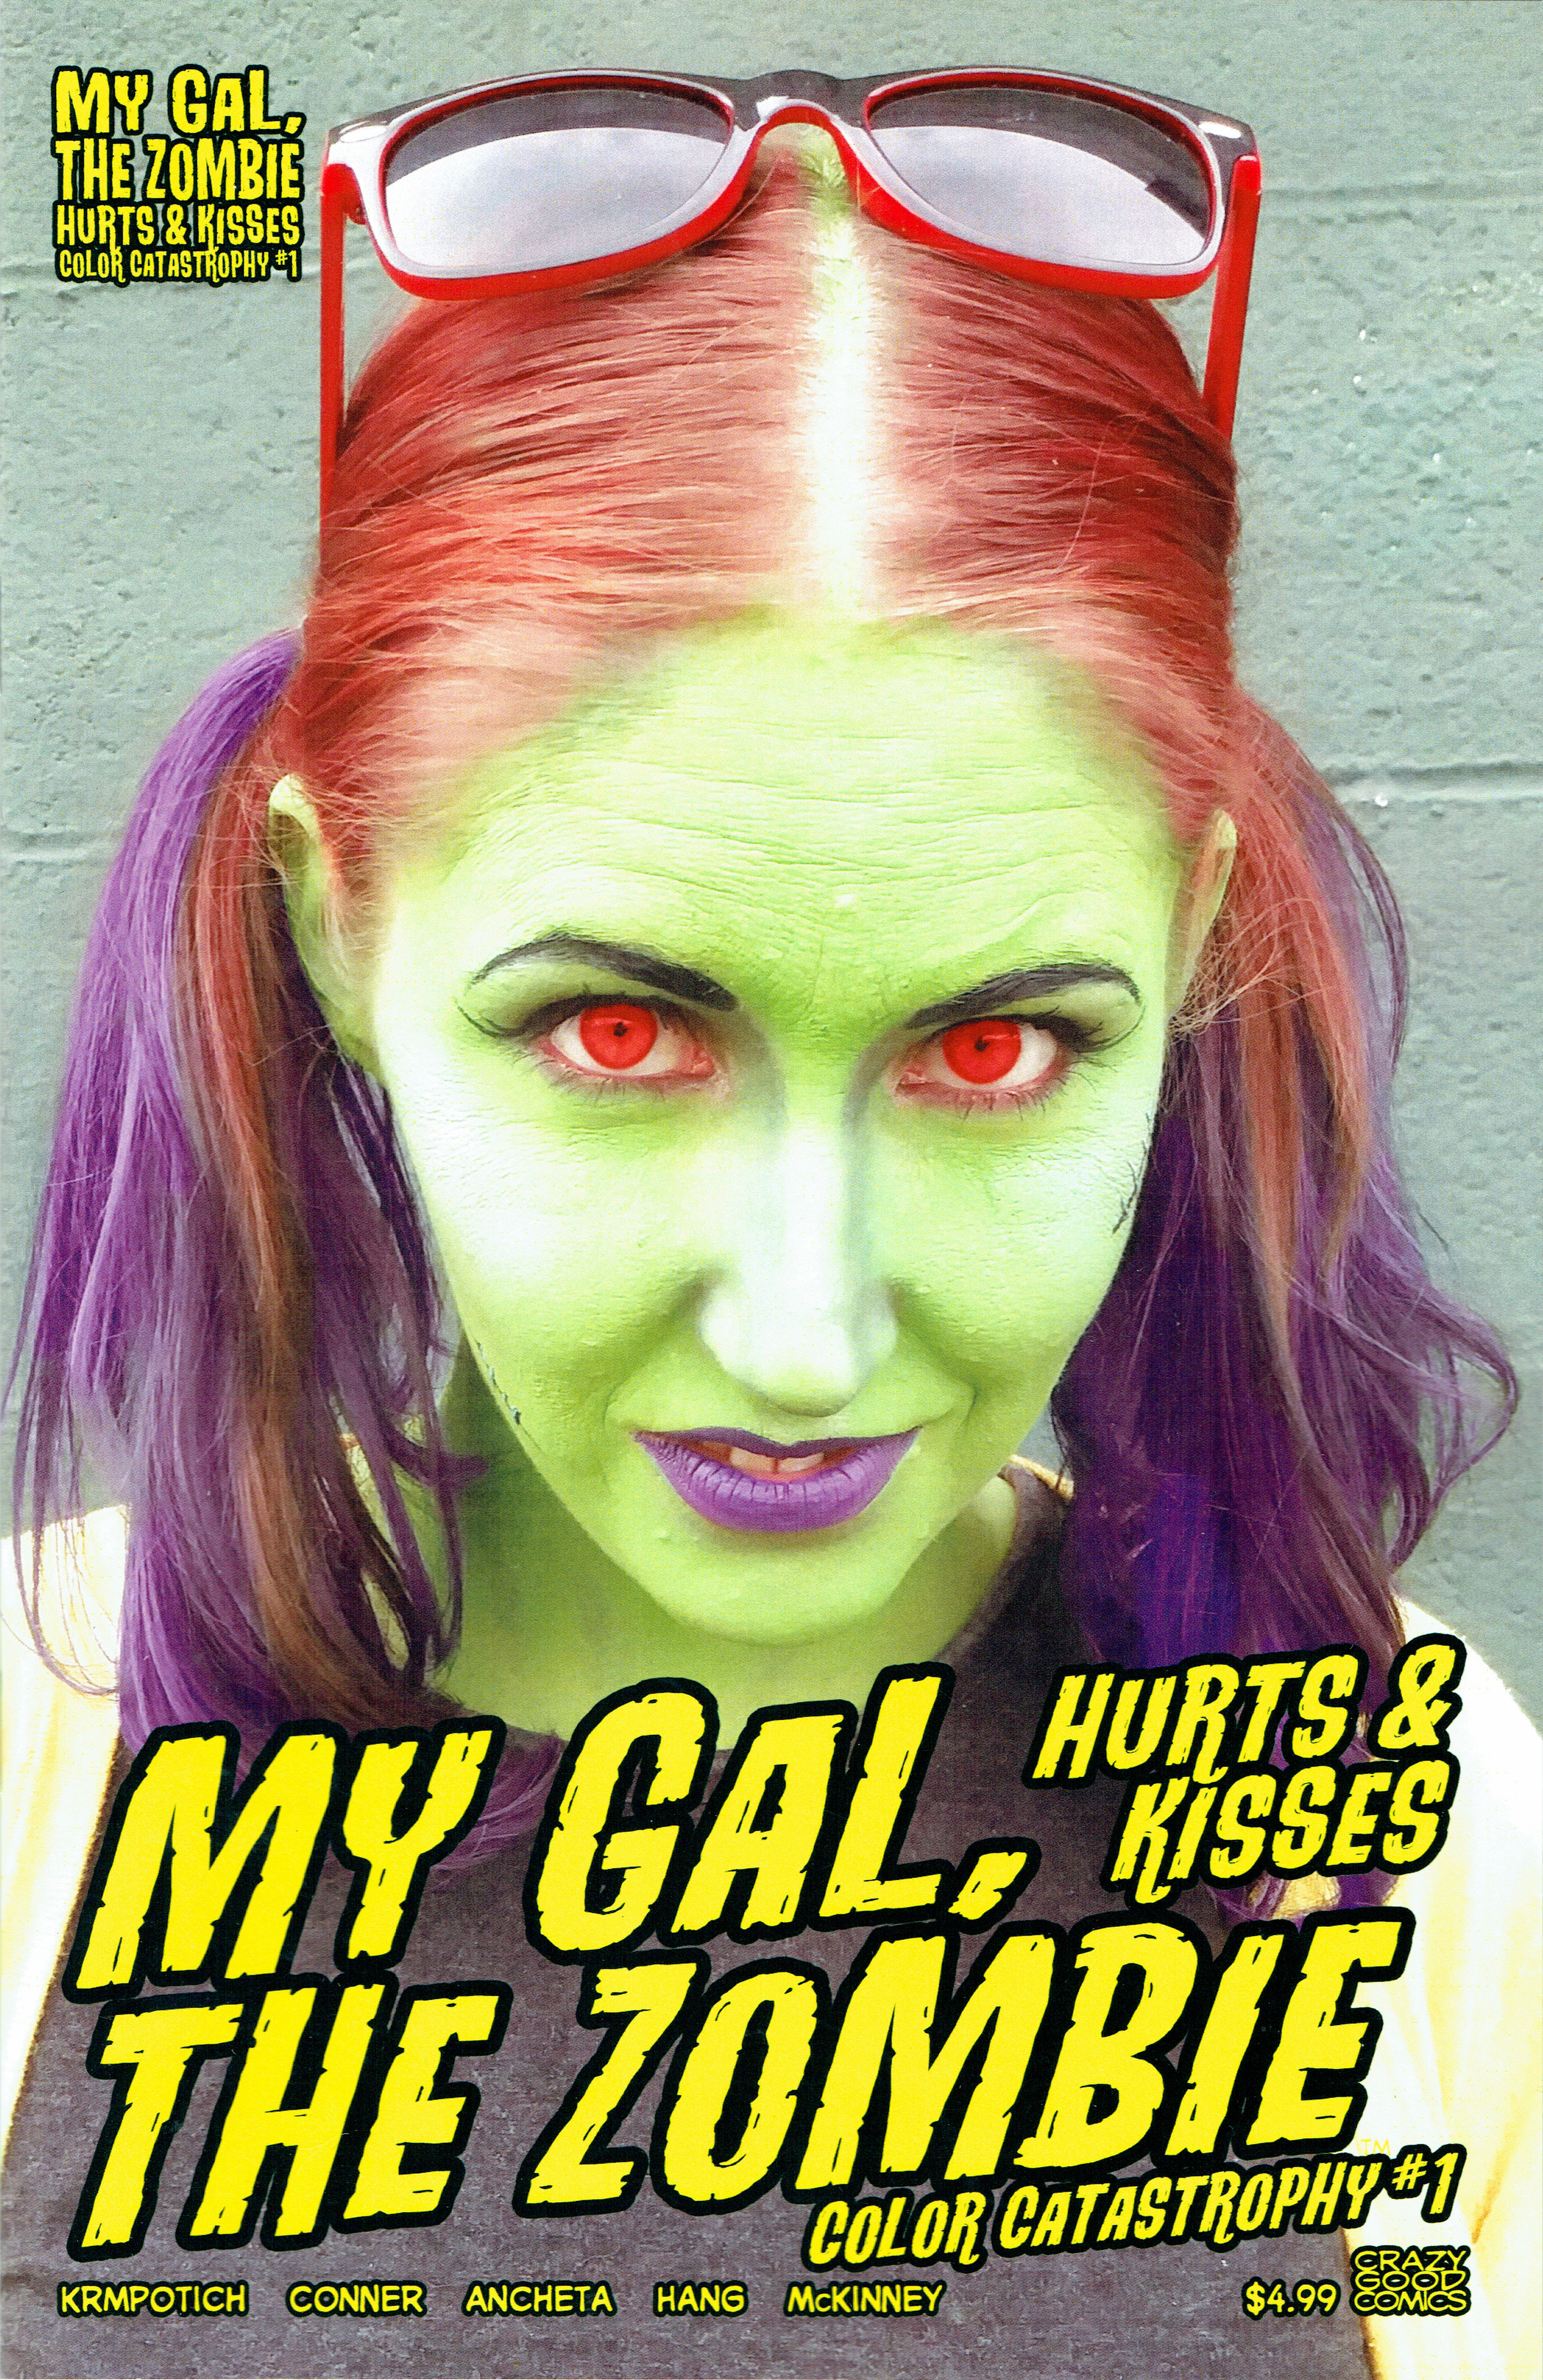 My Gal the Zombie: Color Catastrophy #1 from Crazy Good Comics.